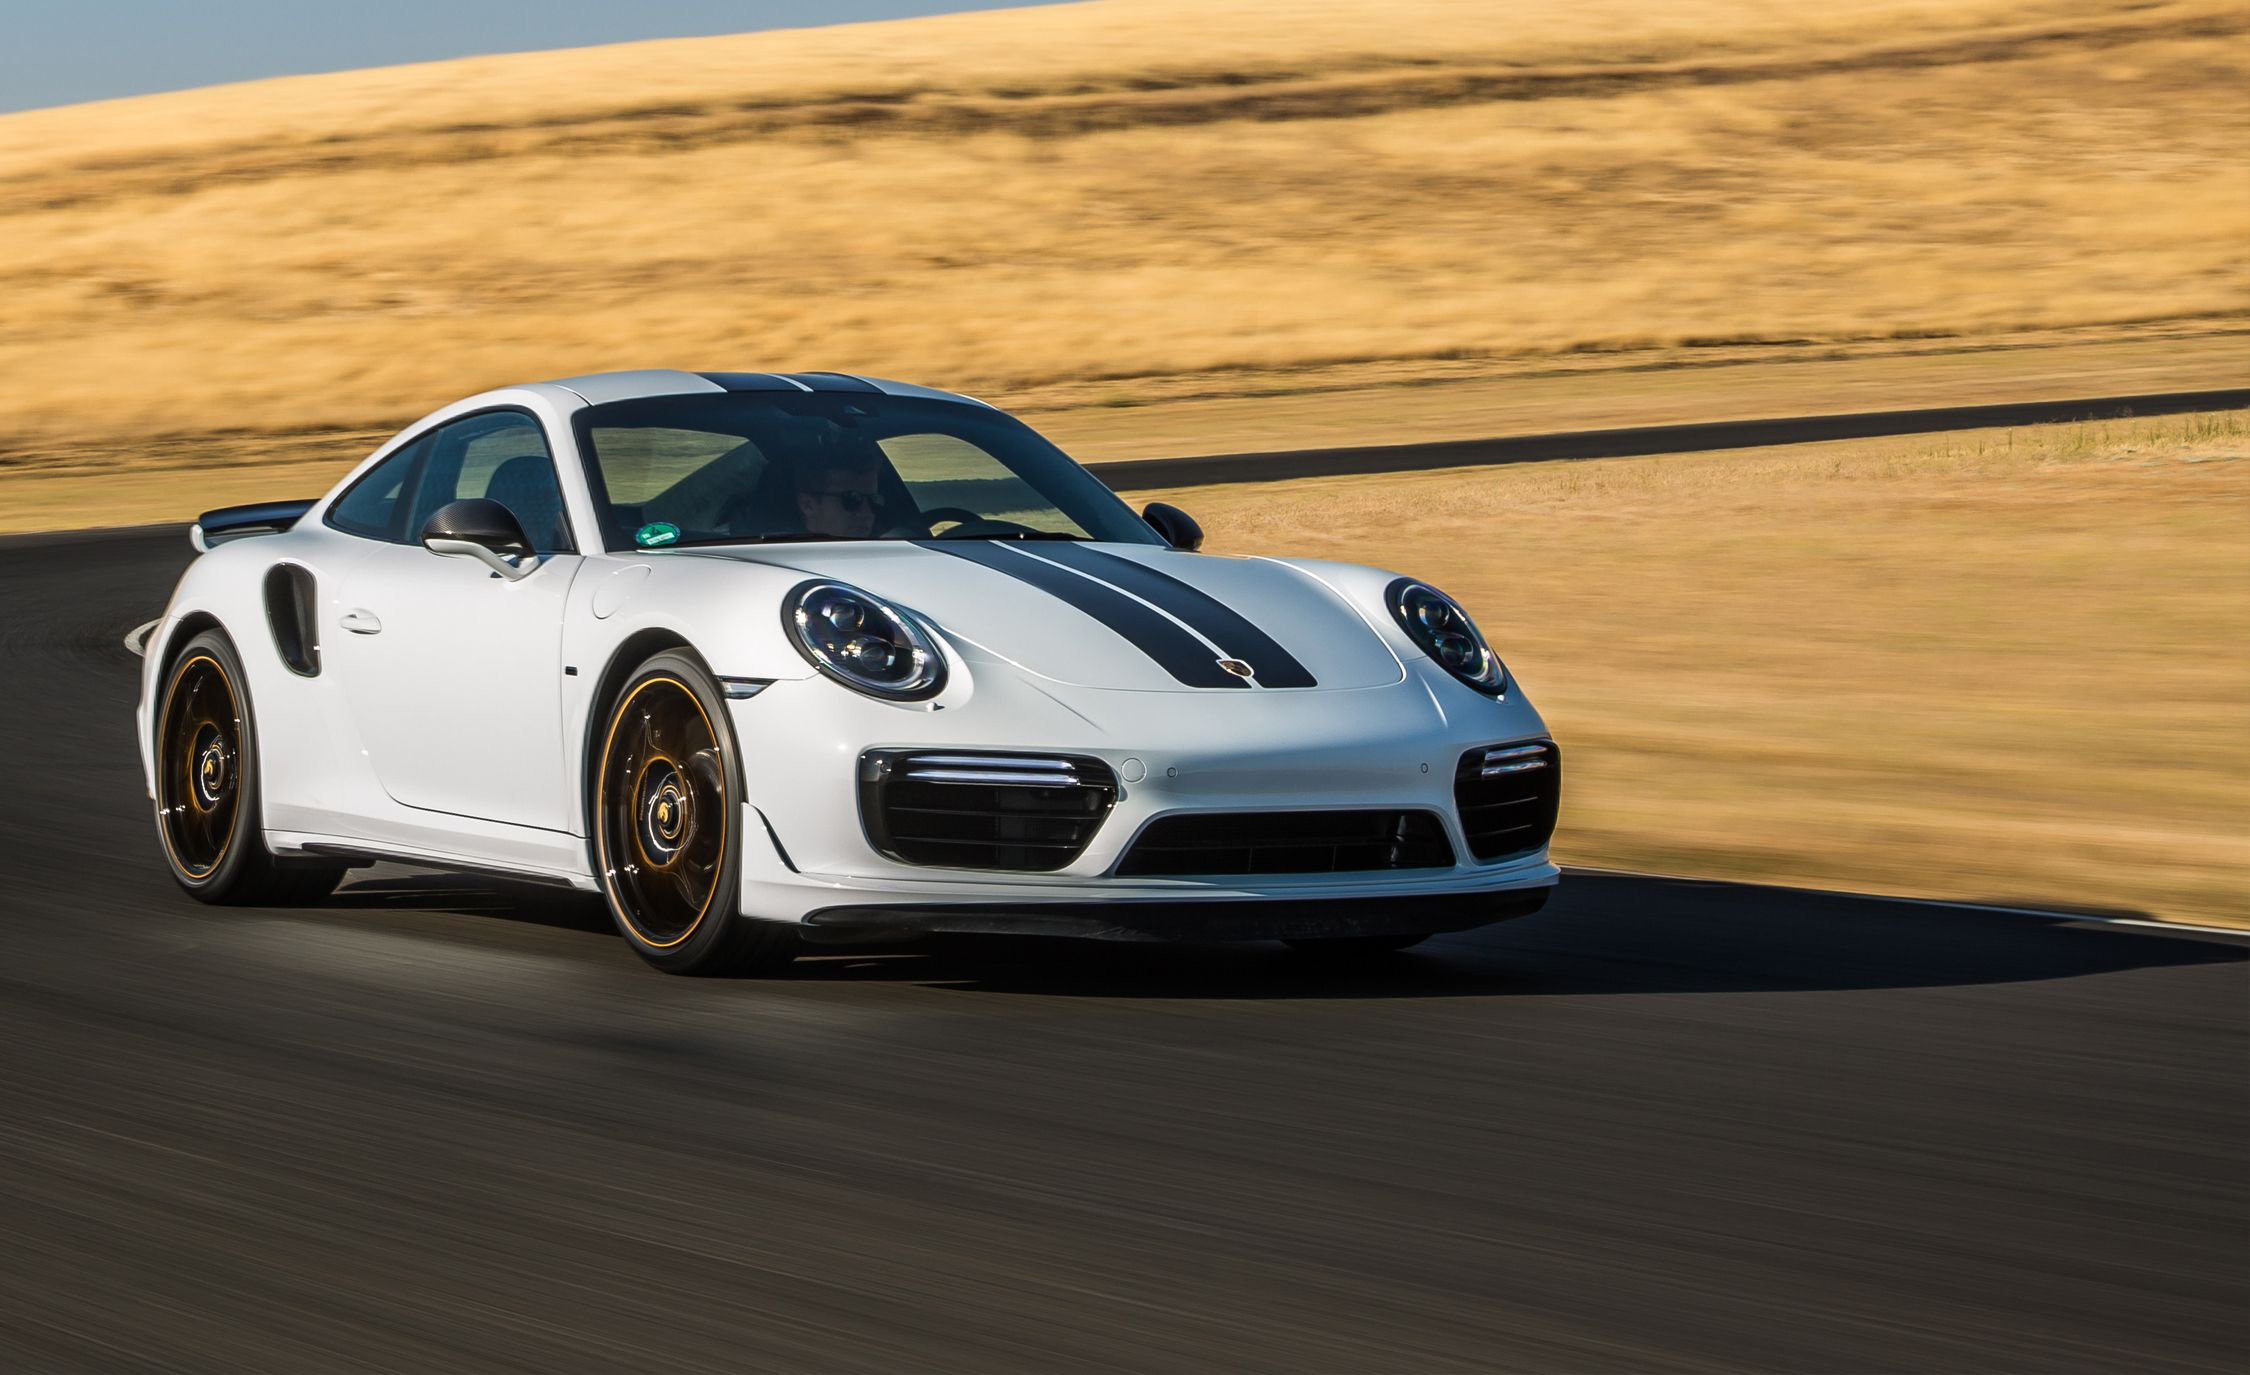 2018-porsche-911-turbo-s-exclusive-first-drive-review-car-and-driver-photo-695623-s-original Mesmerizing Porsche 911 Turbo Vs Z06 Cars Trend